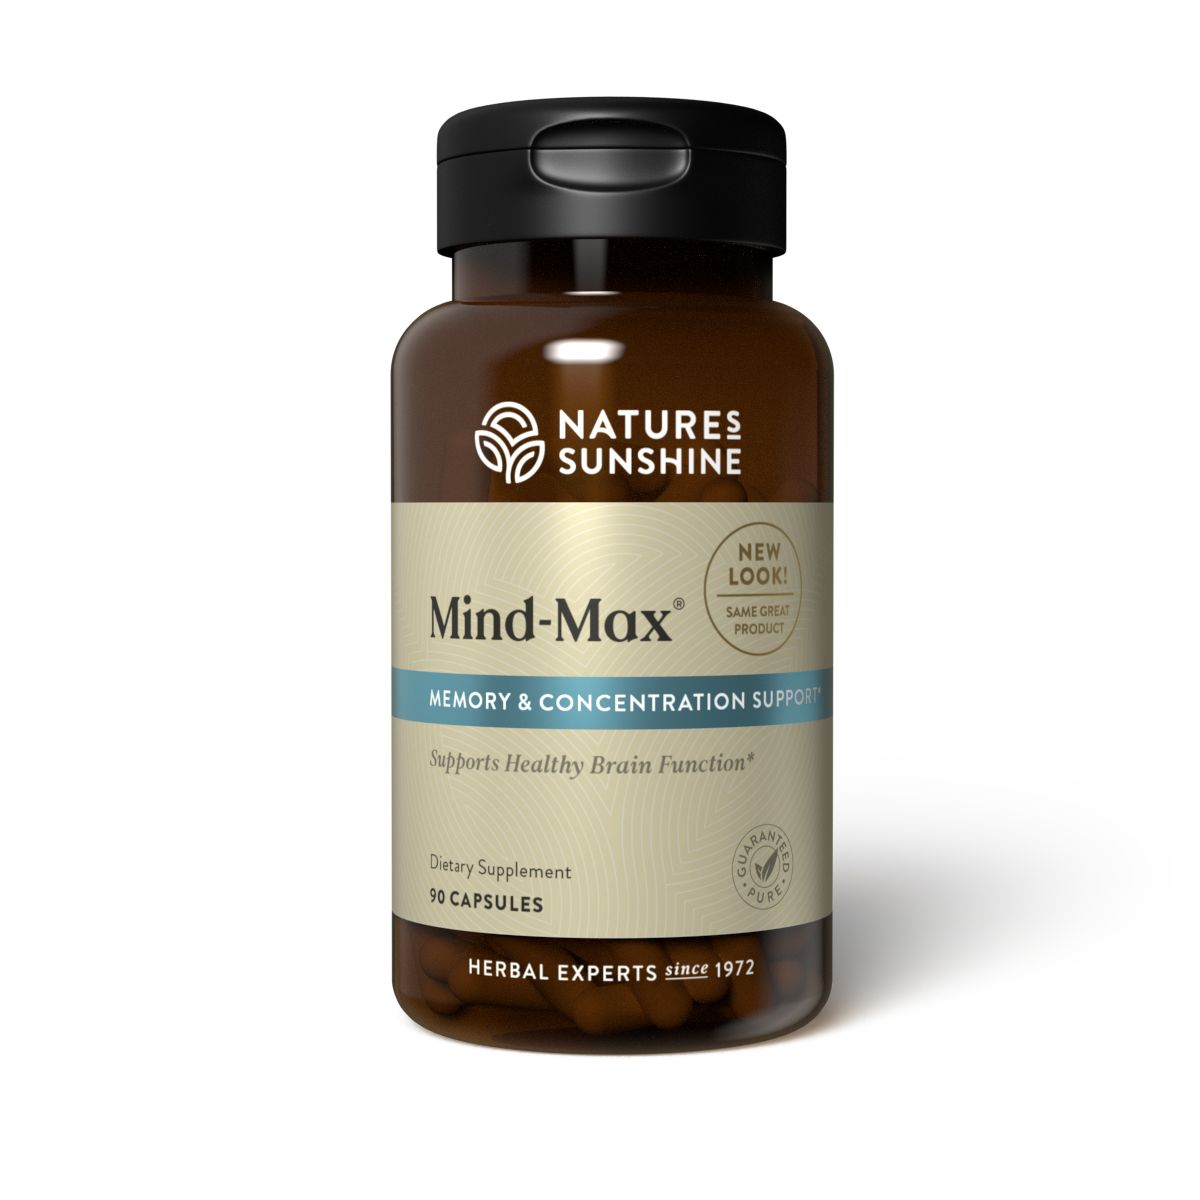 Nature's Sunshine Mind-Max Review